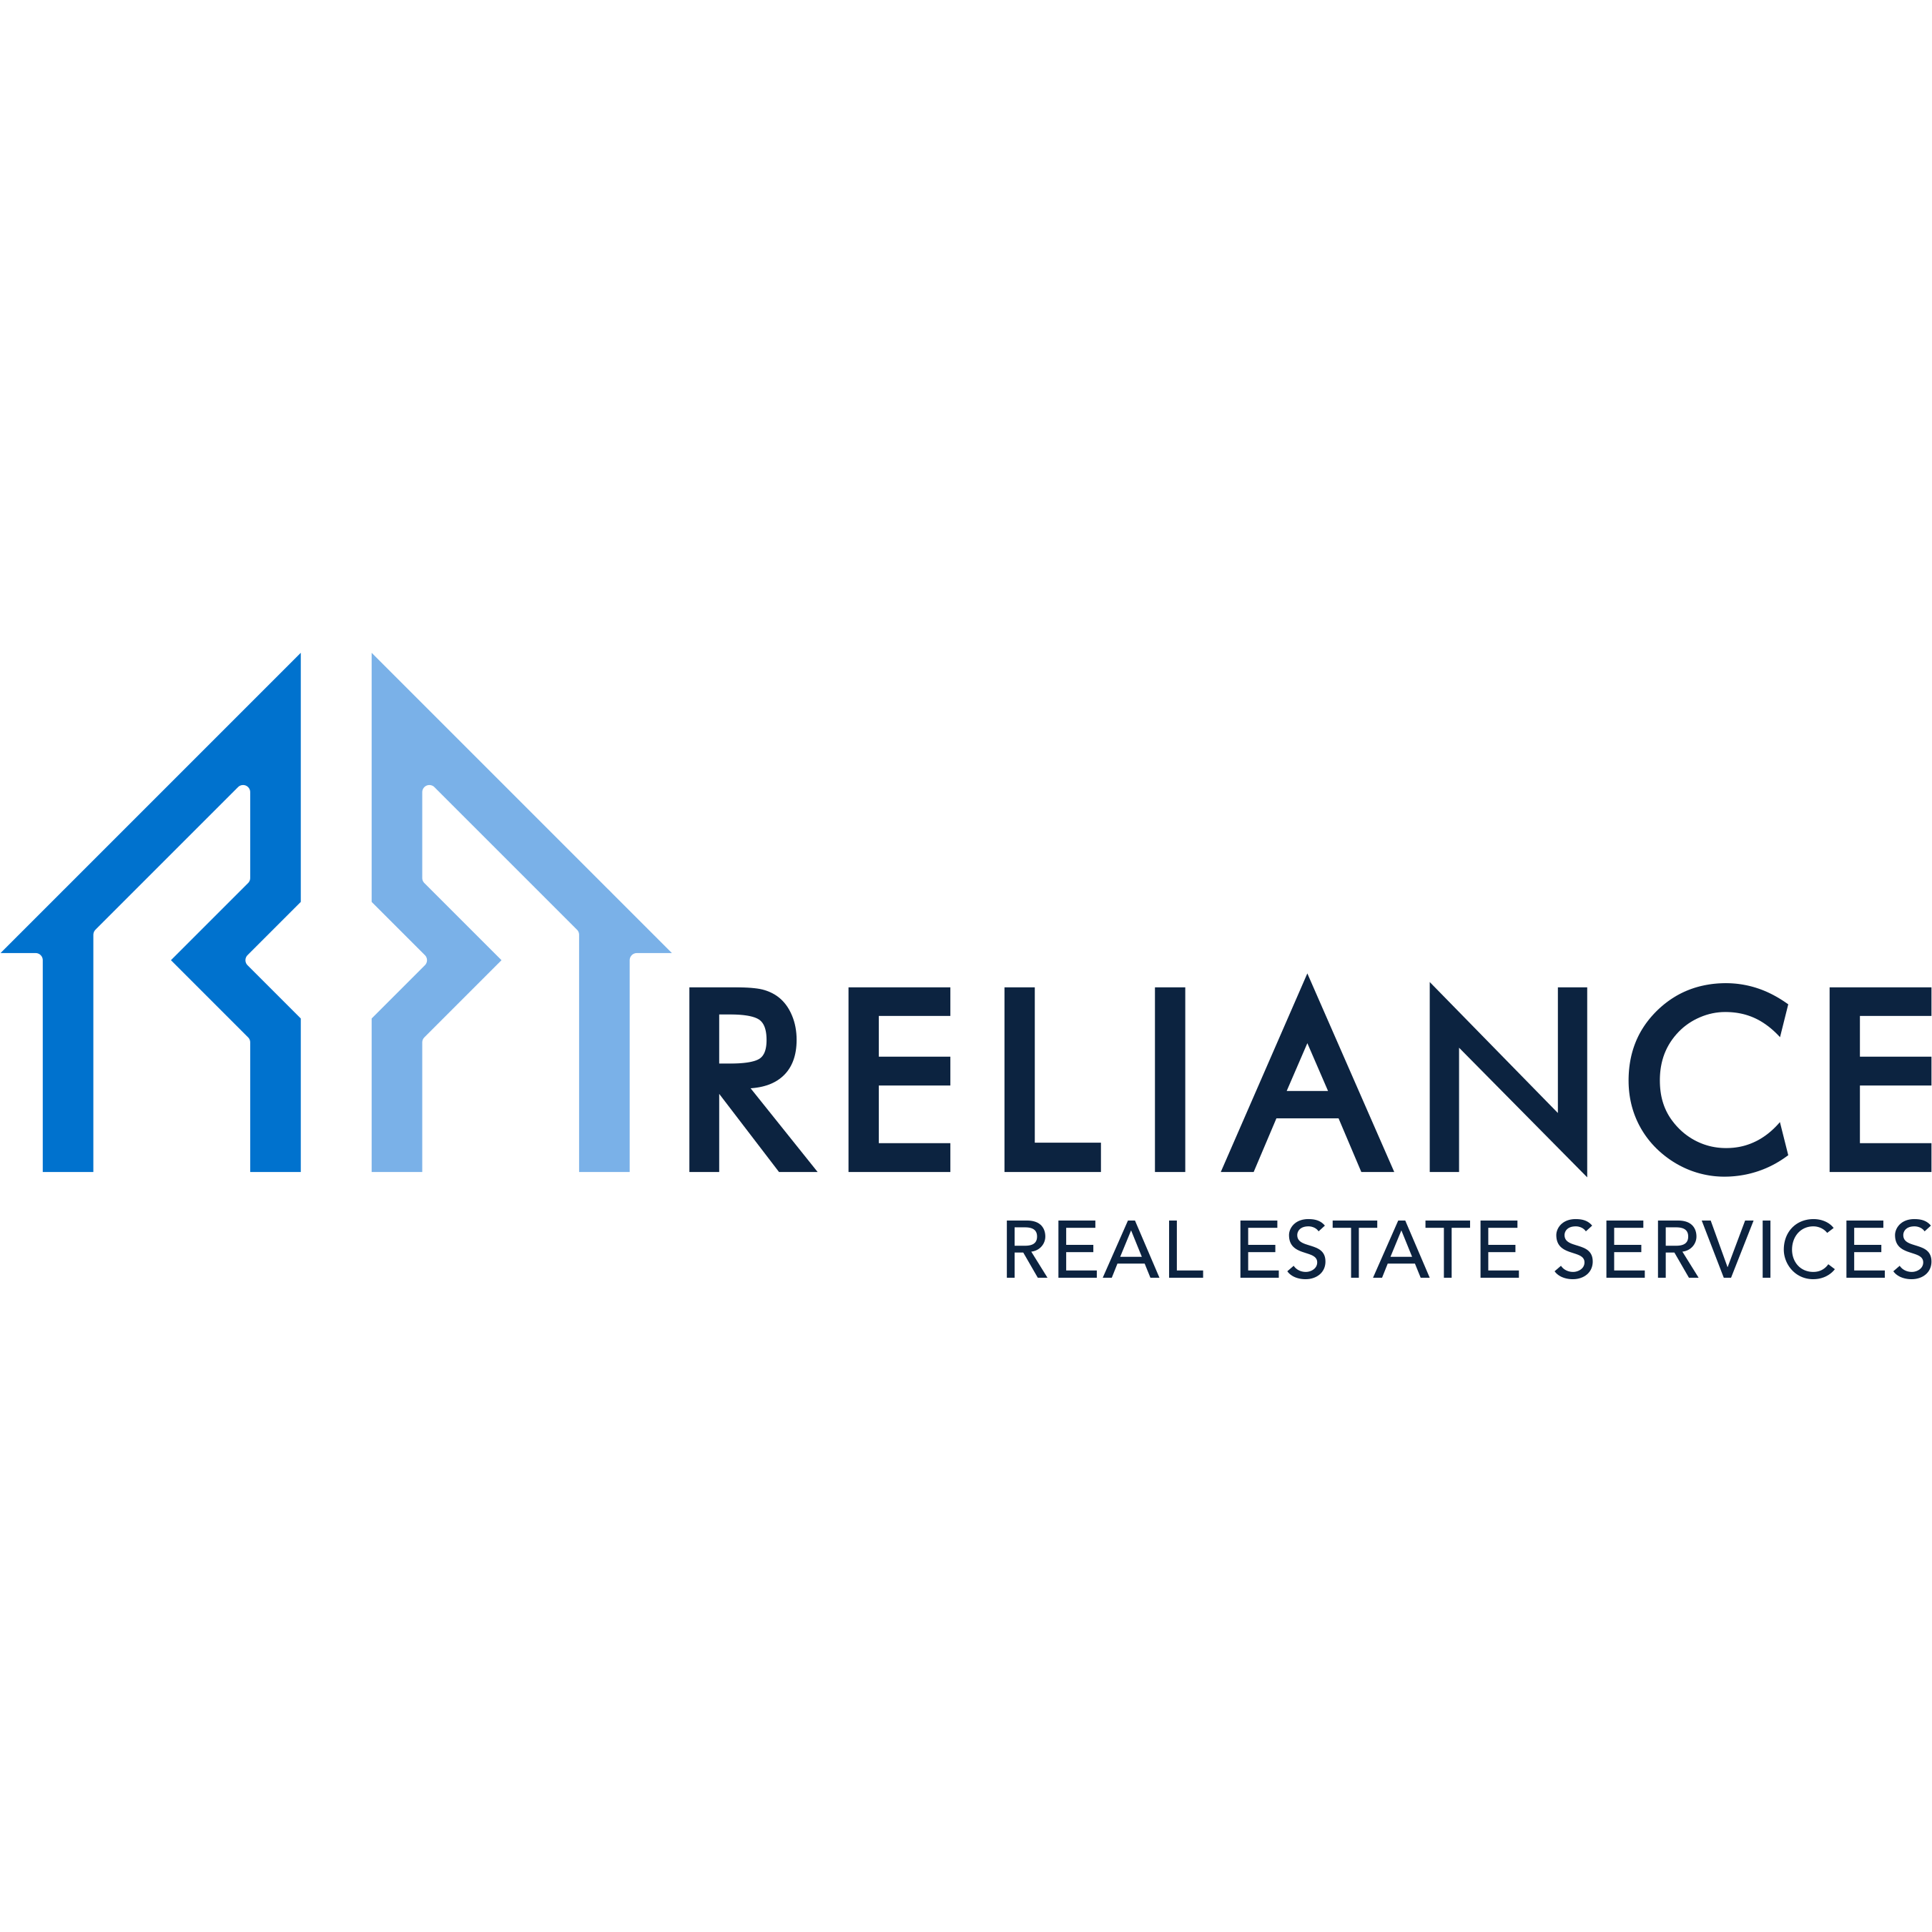 Bobbie Johnson Realtor at Reliance Real Estate Services of California